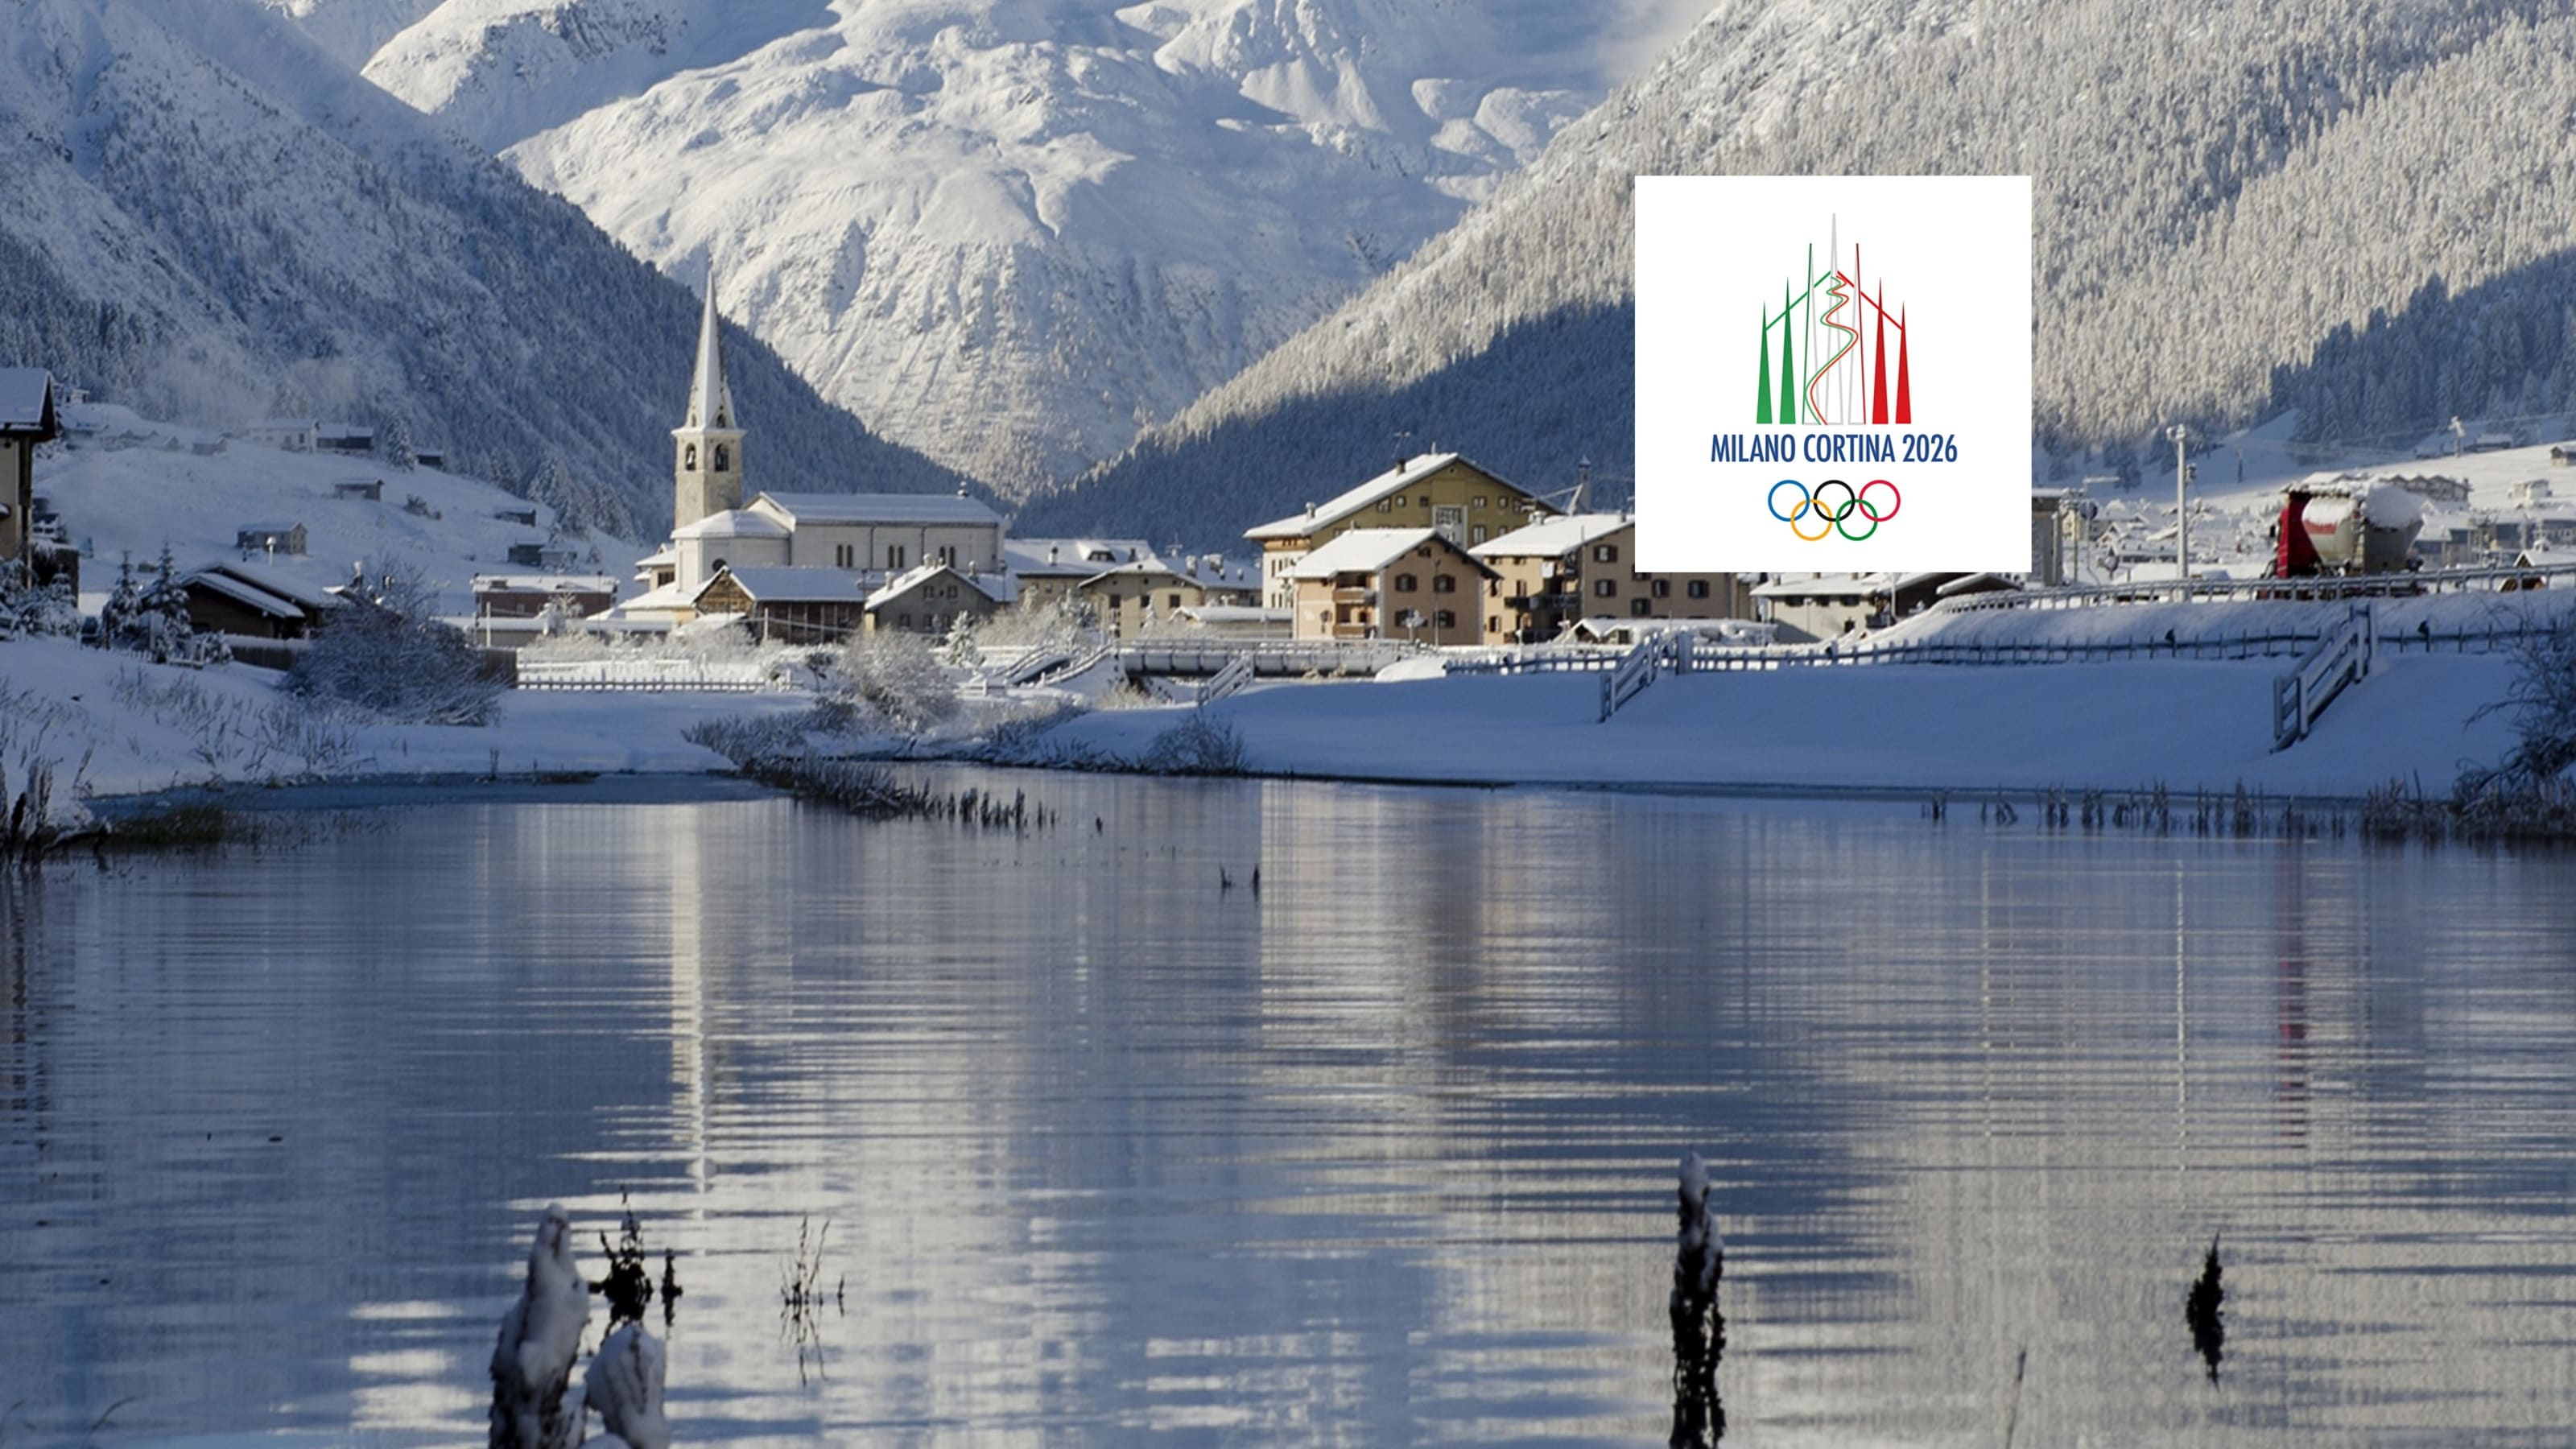 Milano Cortina awarded the Olympic Winter Games 2026 - Olympic News